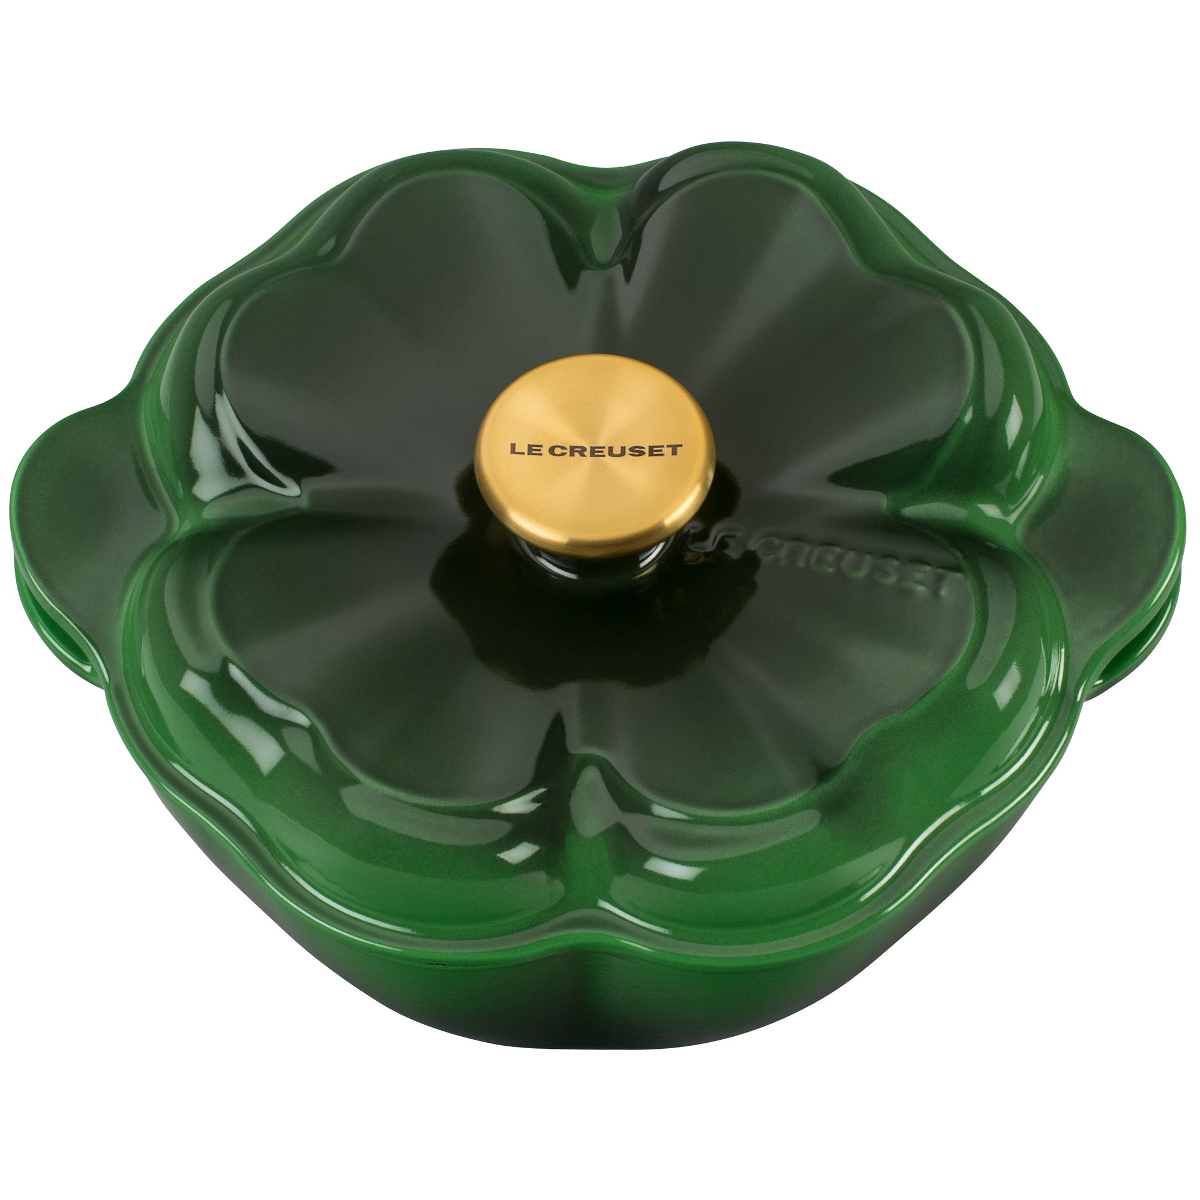 Le Creuset Green Enameled Cast Iron 2.25 Quart Clover Cocotte with Gold Knob